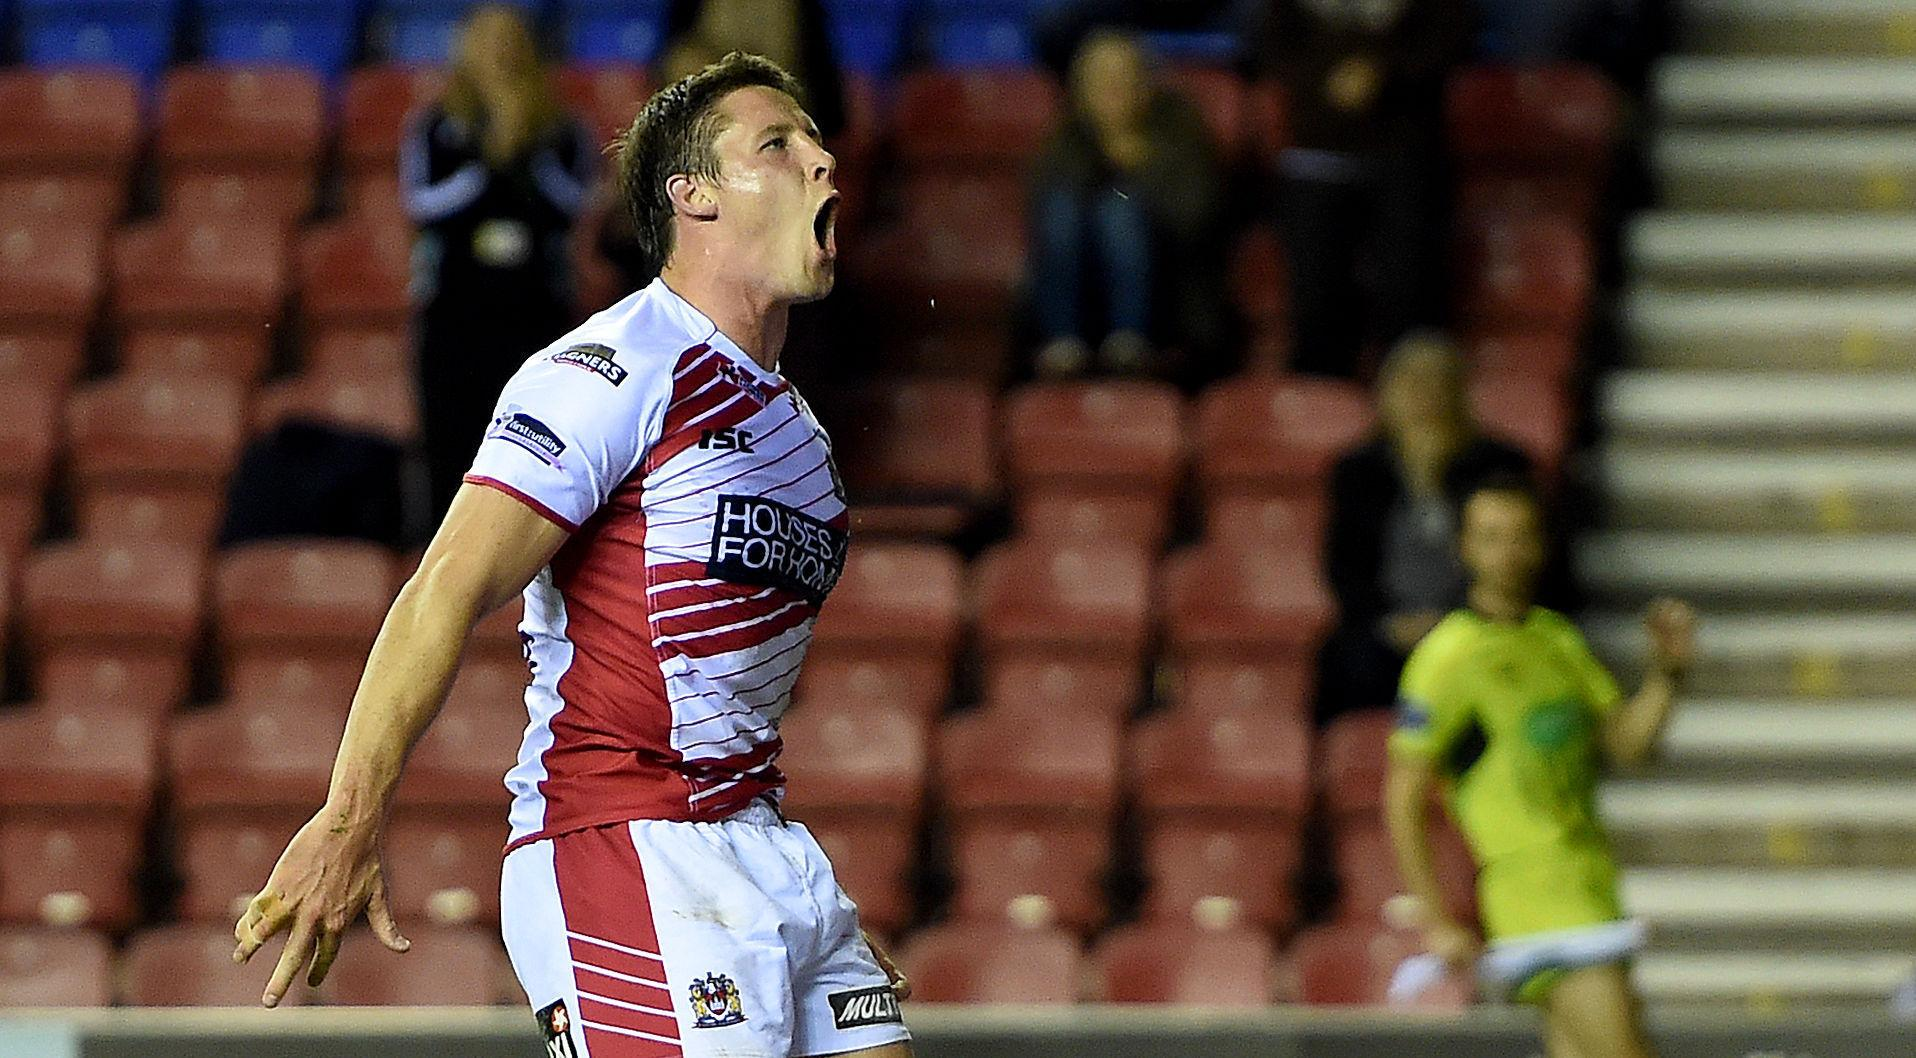 He returned to Wigan Warriors in 2014 from rugby union